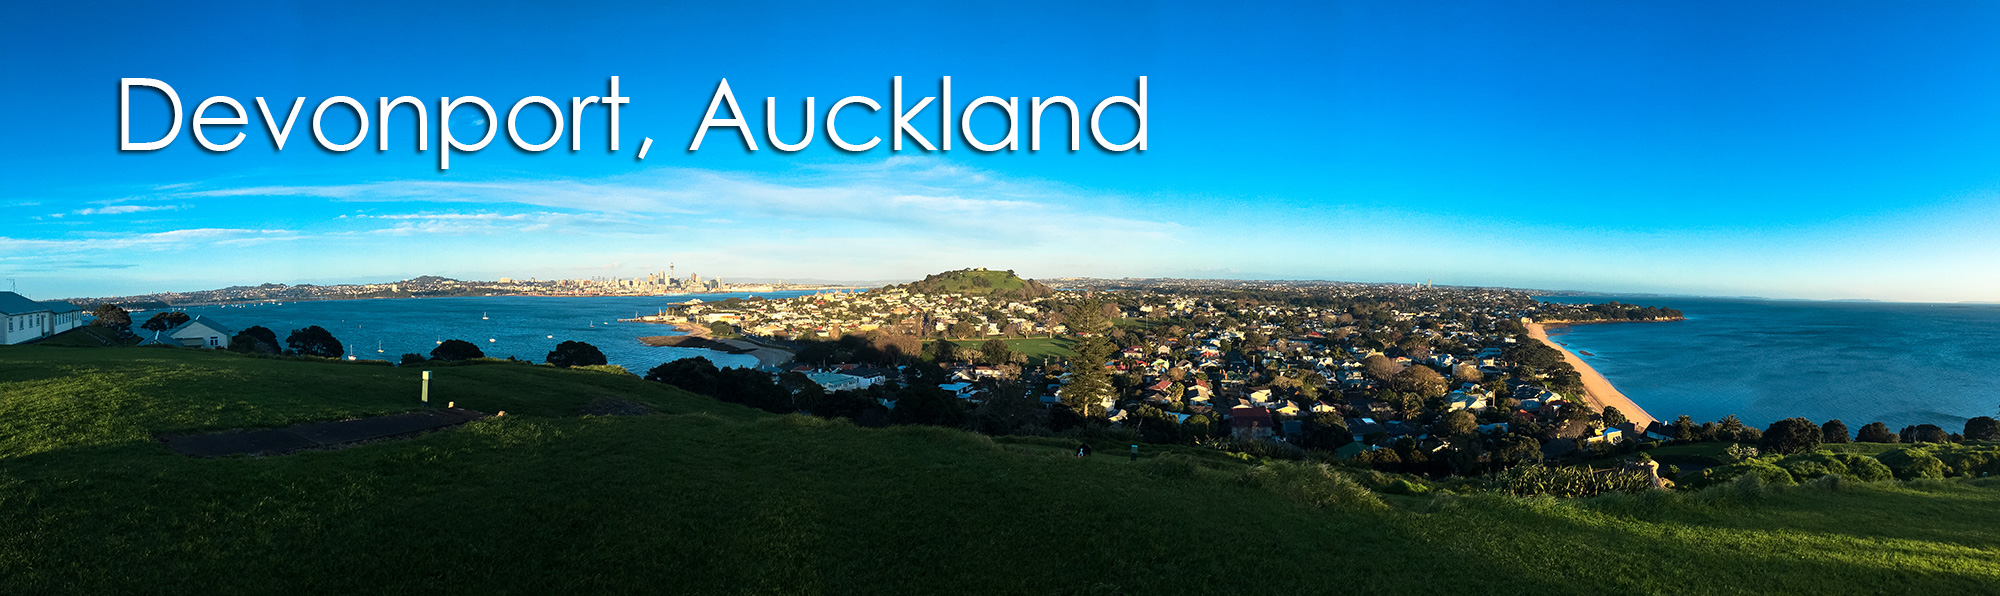 View of Devonport from North Head looking towards Auckland New Zealand